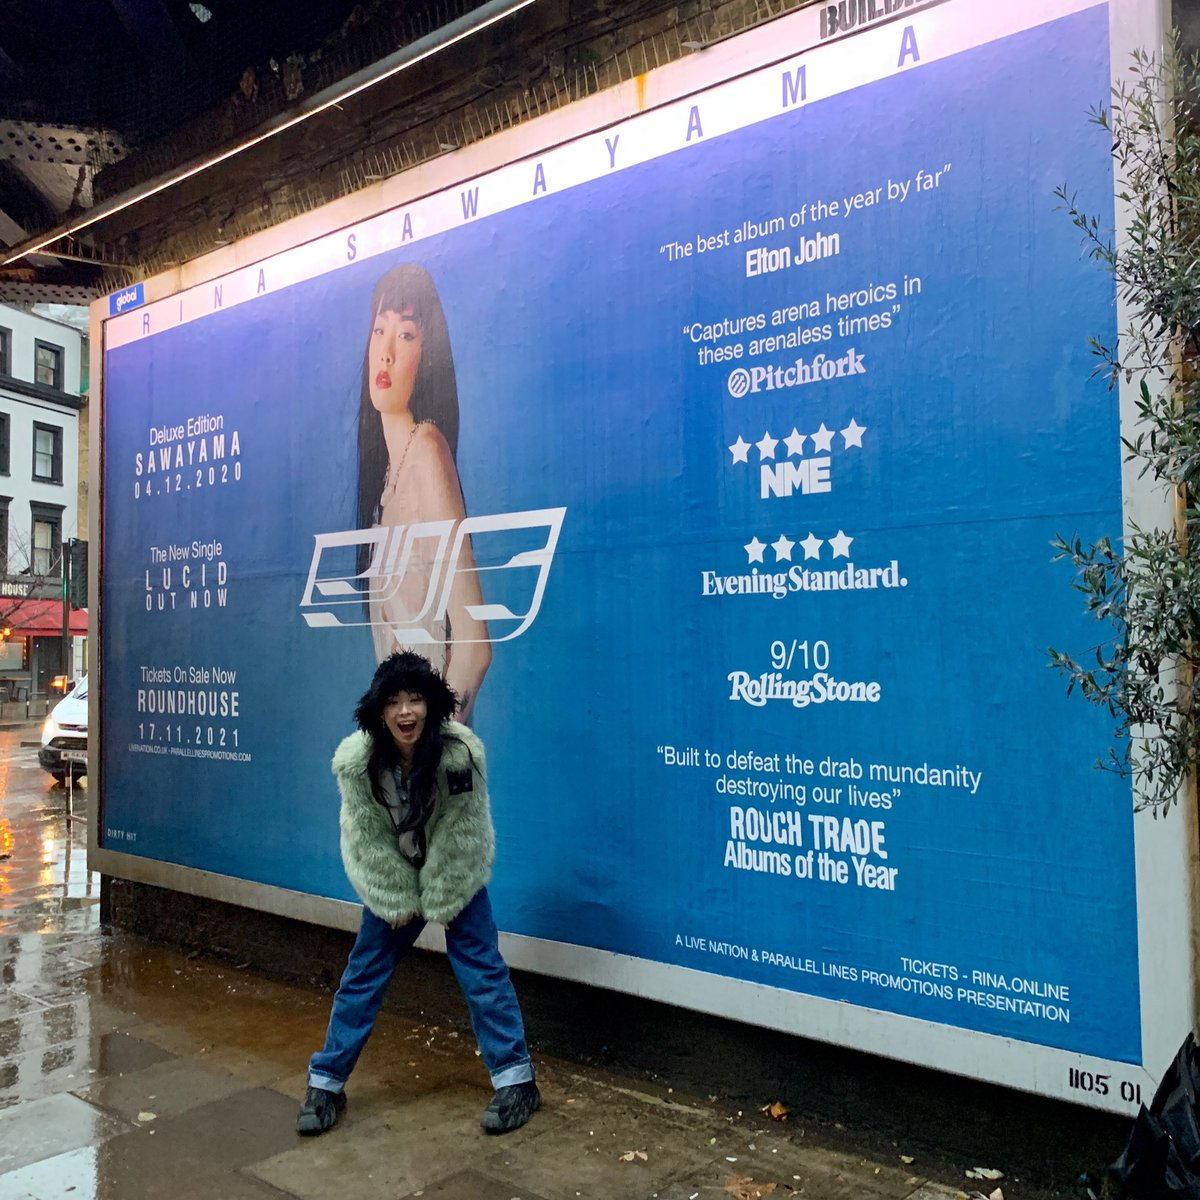 SO MANY THINGS HAPPENING TODAY 🥺  💥DELUXE SAWAYAMA IS OUT !!!   💥TICKETS FOR UK + IRELAND 2021 SHOWS ON SALE !!  💥LUCID video premiere tonight at 6pm GMT !  💥I stood in front of my first UK billboard in a characteristically rainy af day in Camden !!!!!